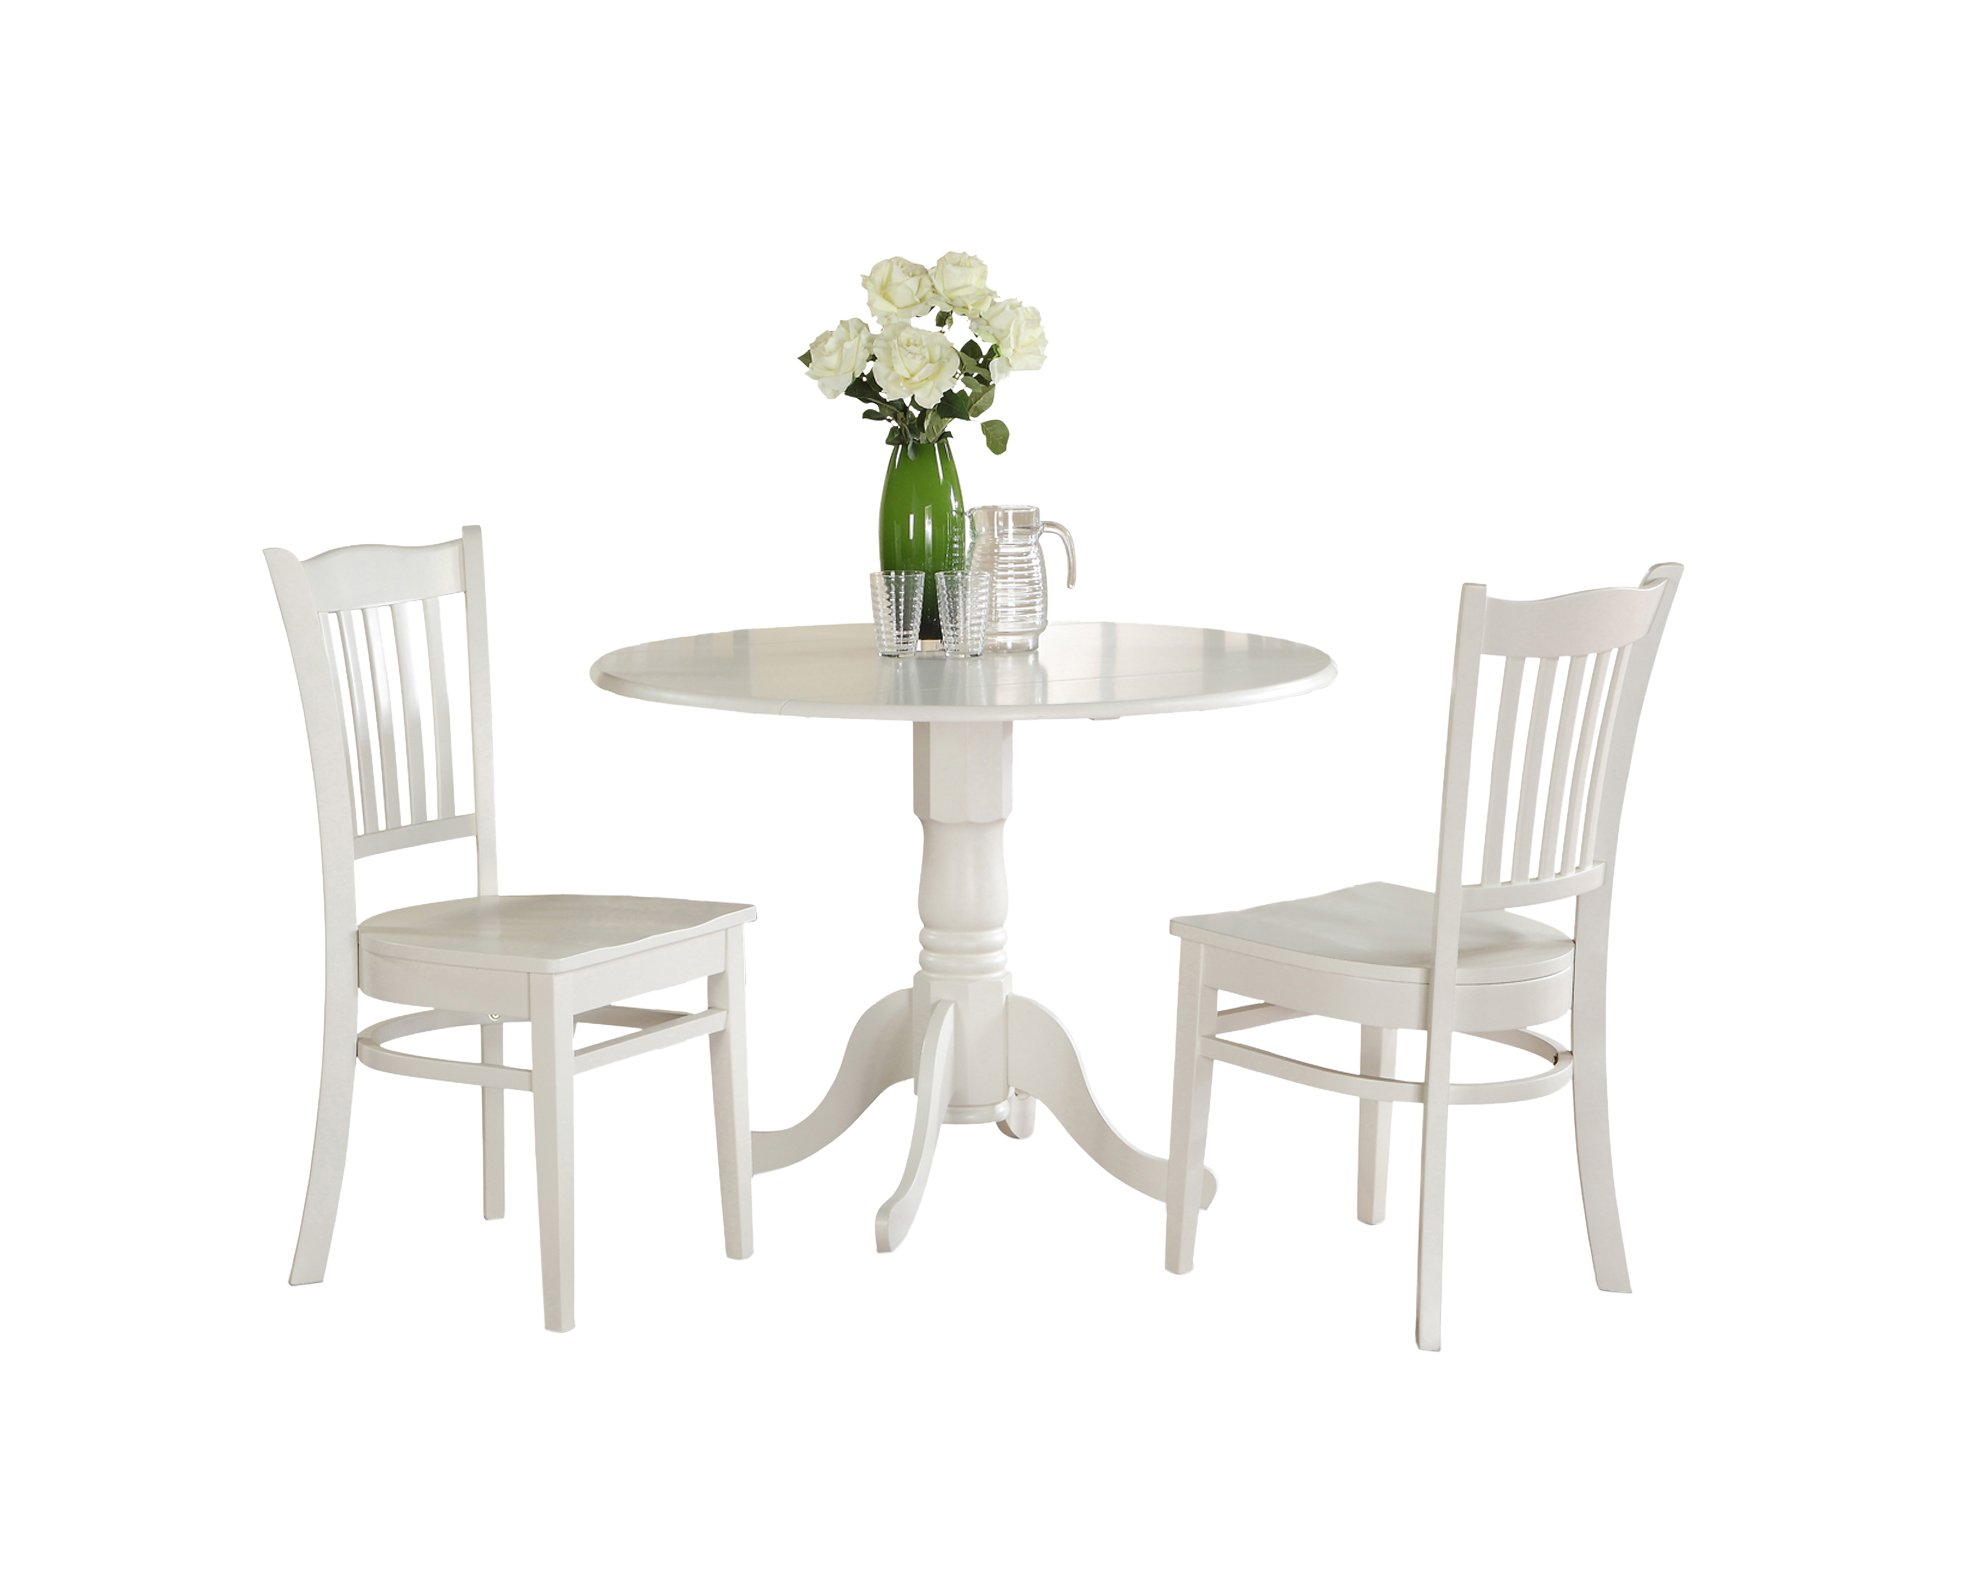 East West Furniture DLGR3-WHI-W 3-Piece Kitchen Table Set, Linen White Finish by East West Furniture